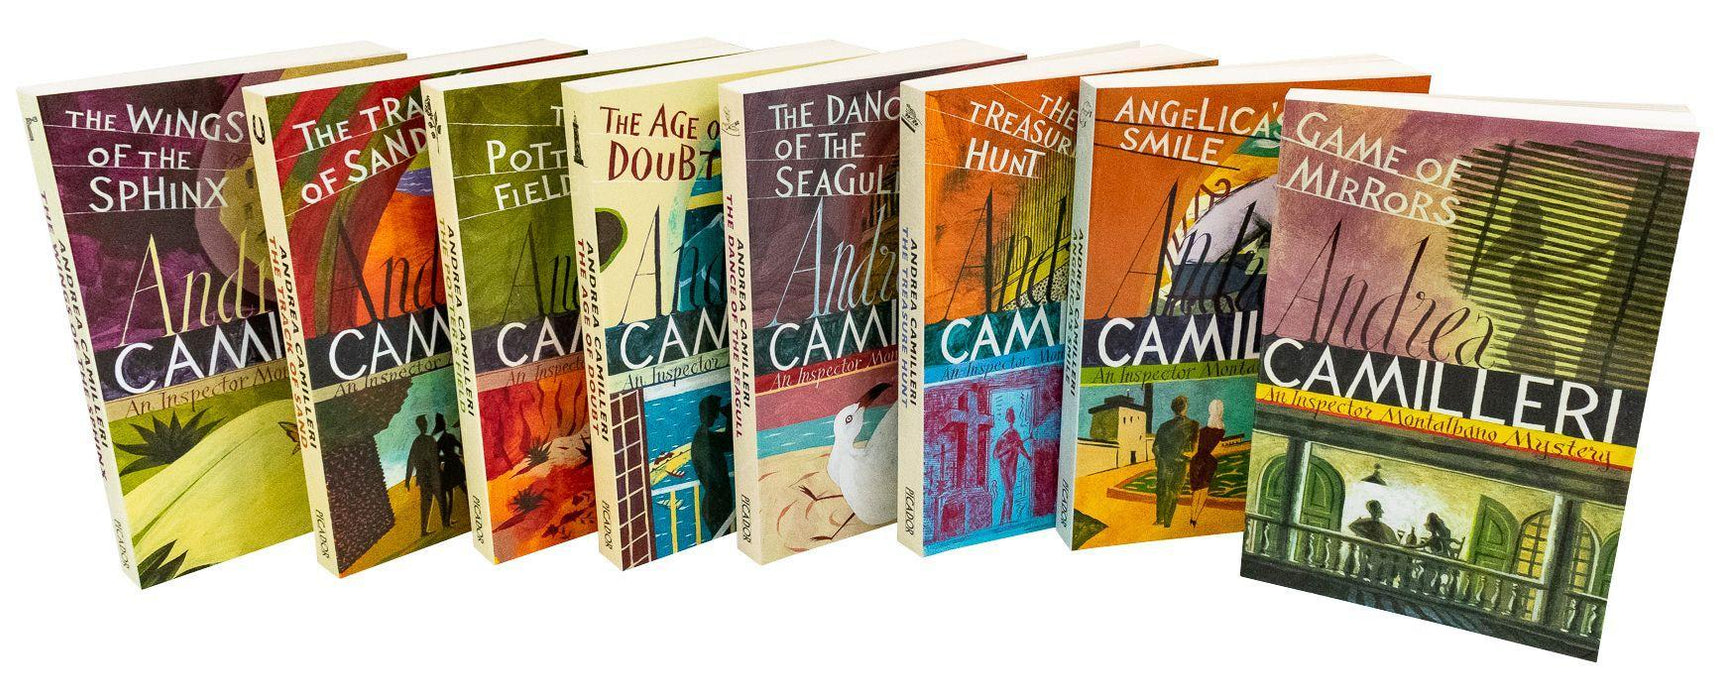 Inspector Montalbano Collection Andrea Camilleri 8 Books Set - Young Adult - Paperback - Books2Door